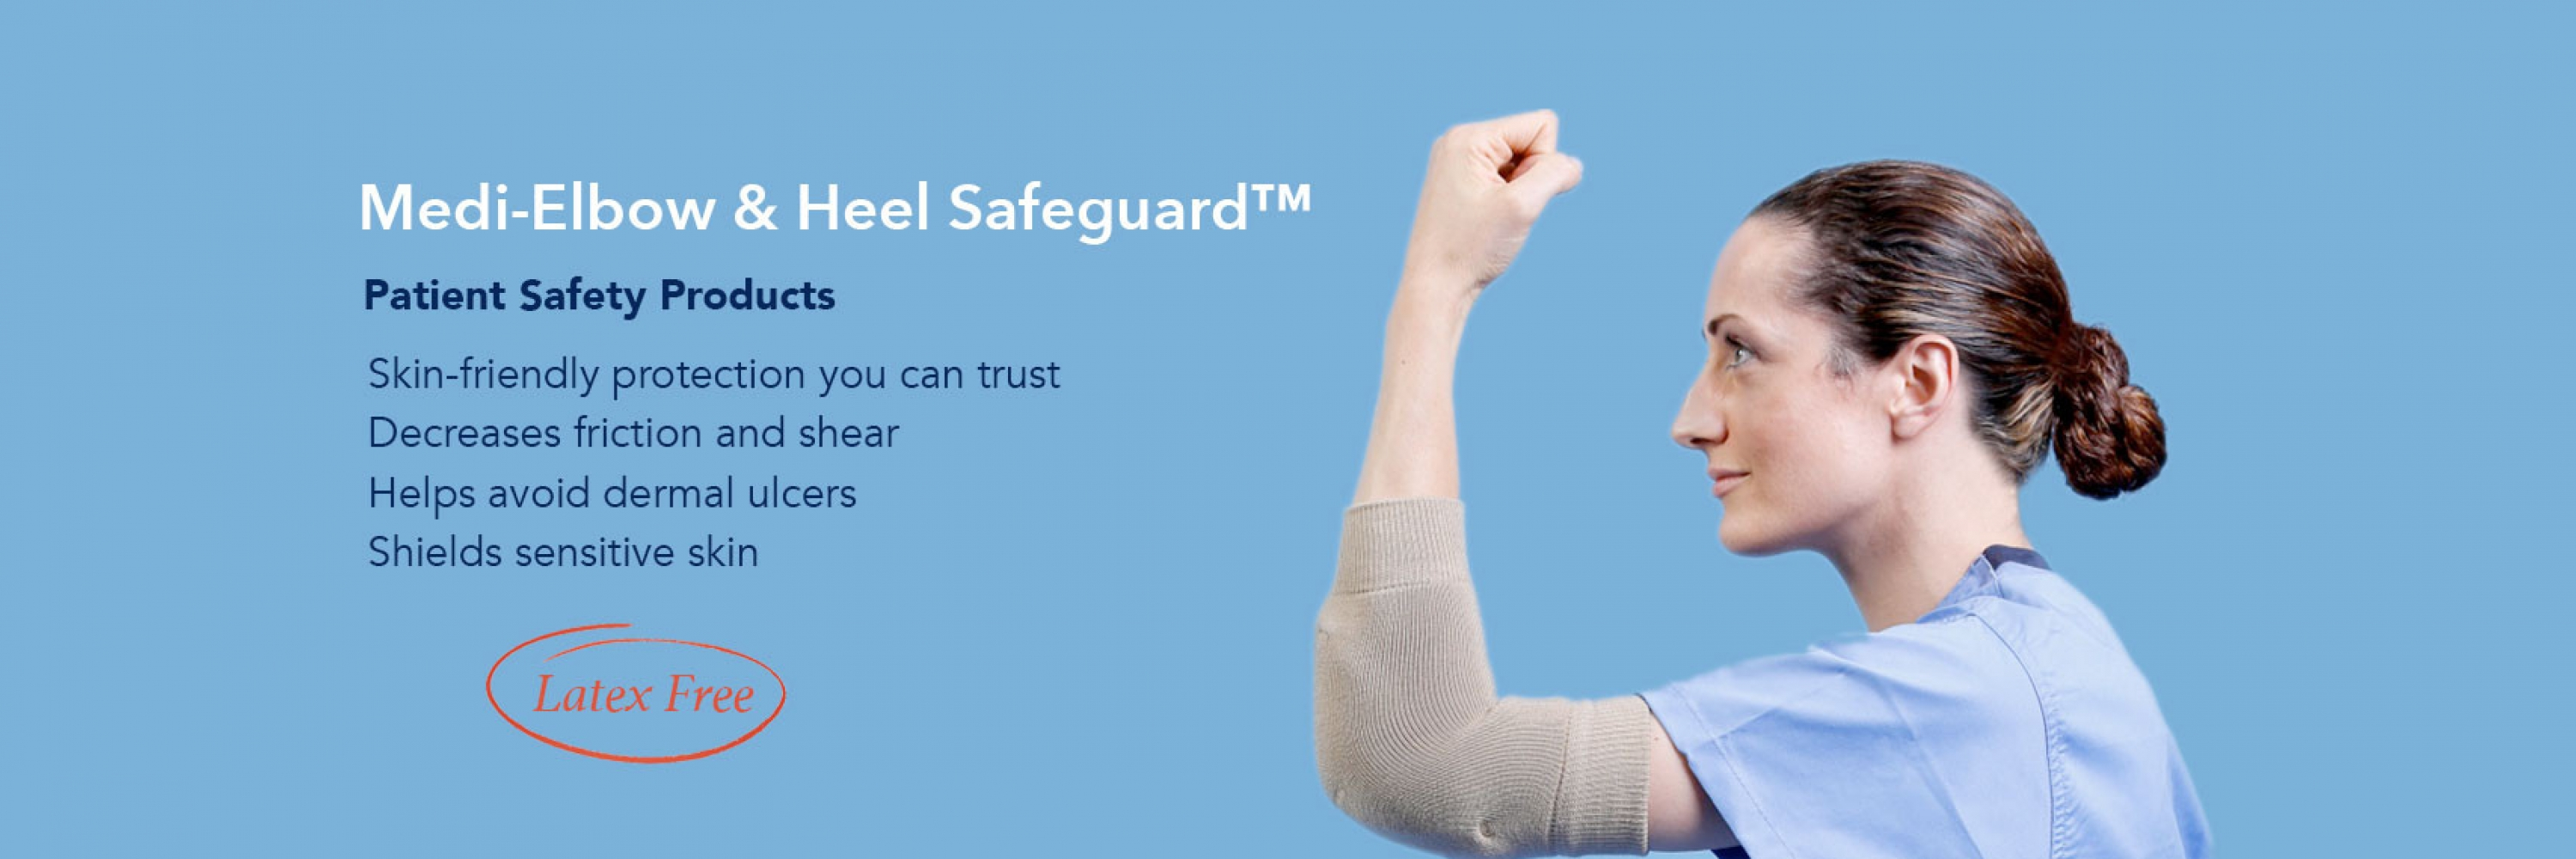 Slide-Medi-Elbow-High-Quality-Patient-Safety-Products